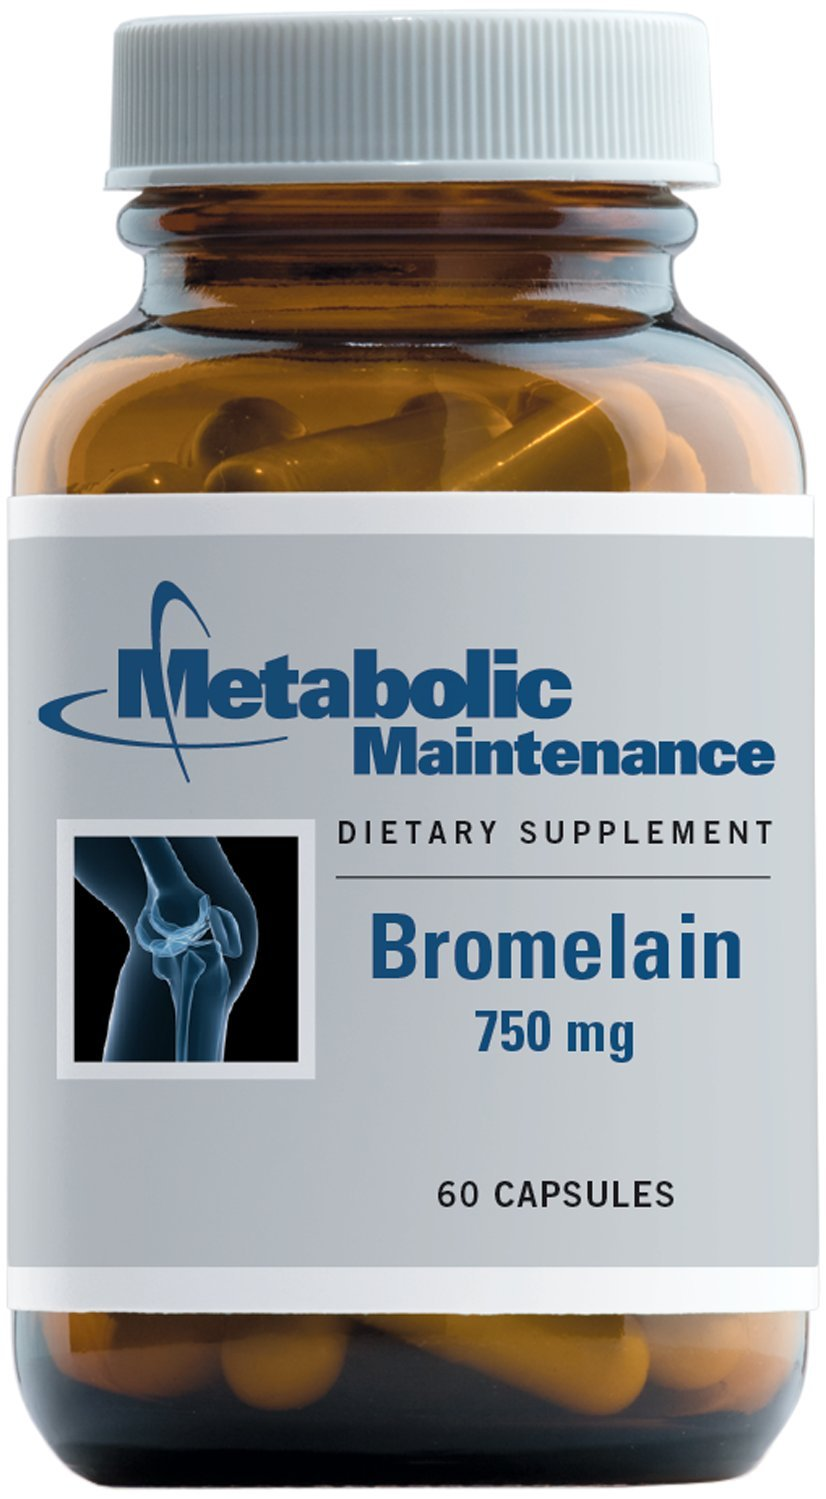 Metabolic Maintenance - Bromelain - 750 mg, Enzyme for Protein Digestion Support, 60 Capsules